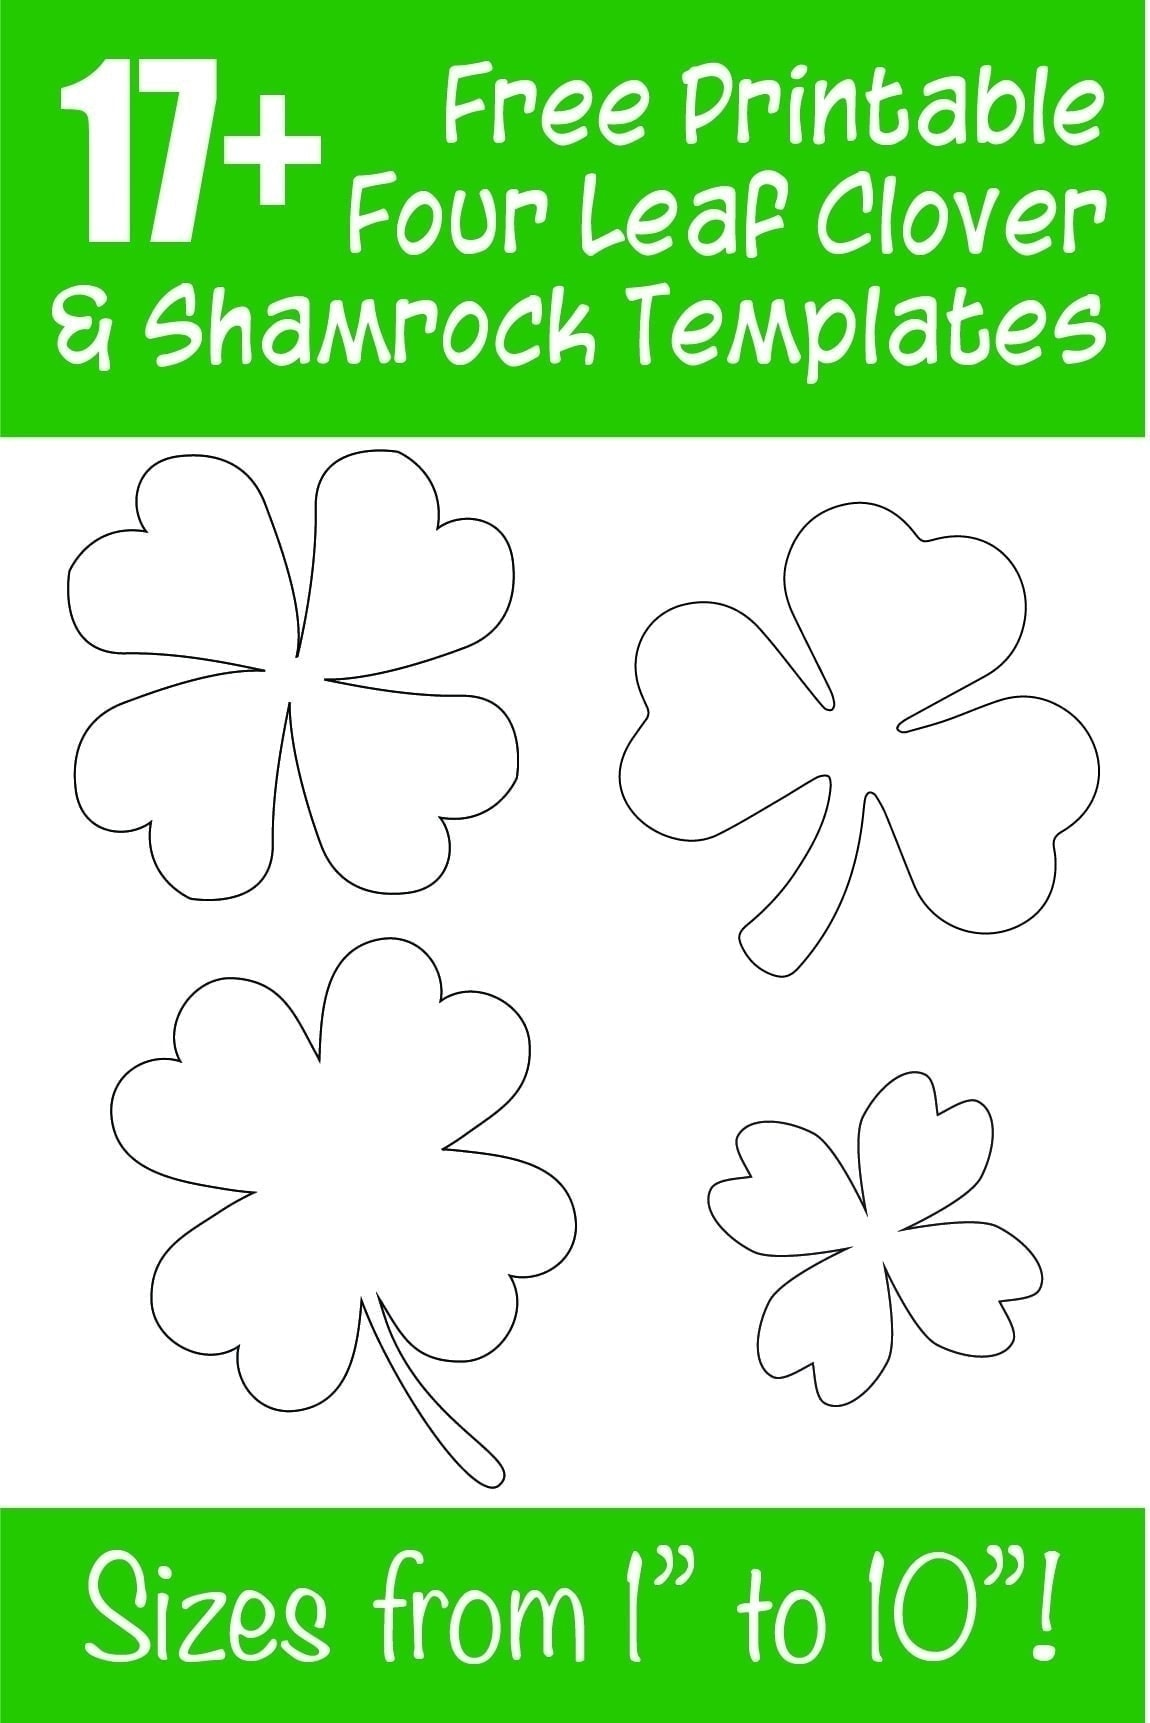 photo regarding 4 Leaf Clover Printable named 17+ Free of charge Printable 4 Leaf Clover Shamrock Templates